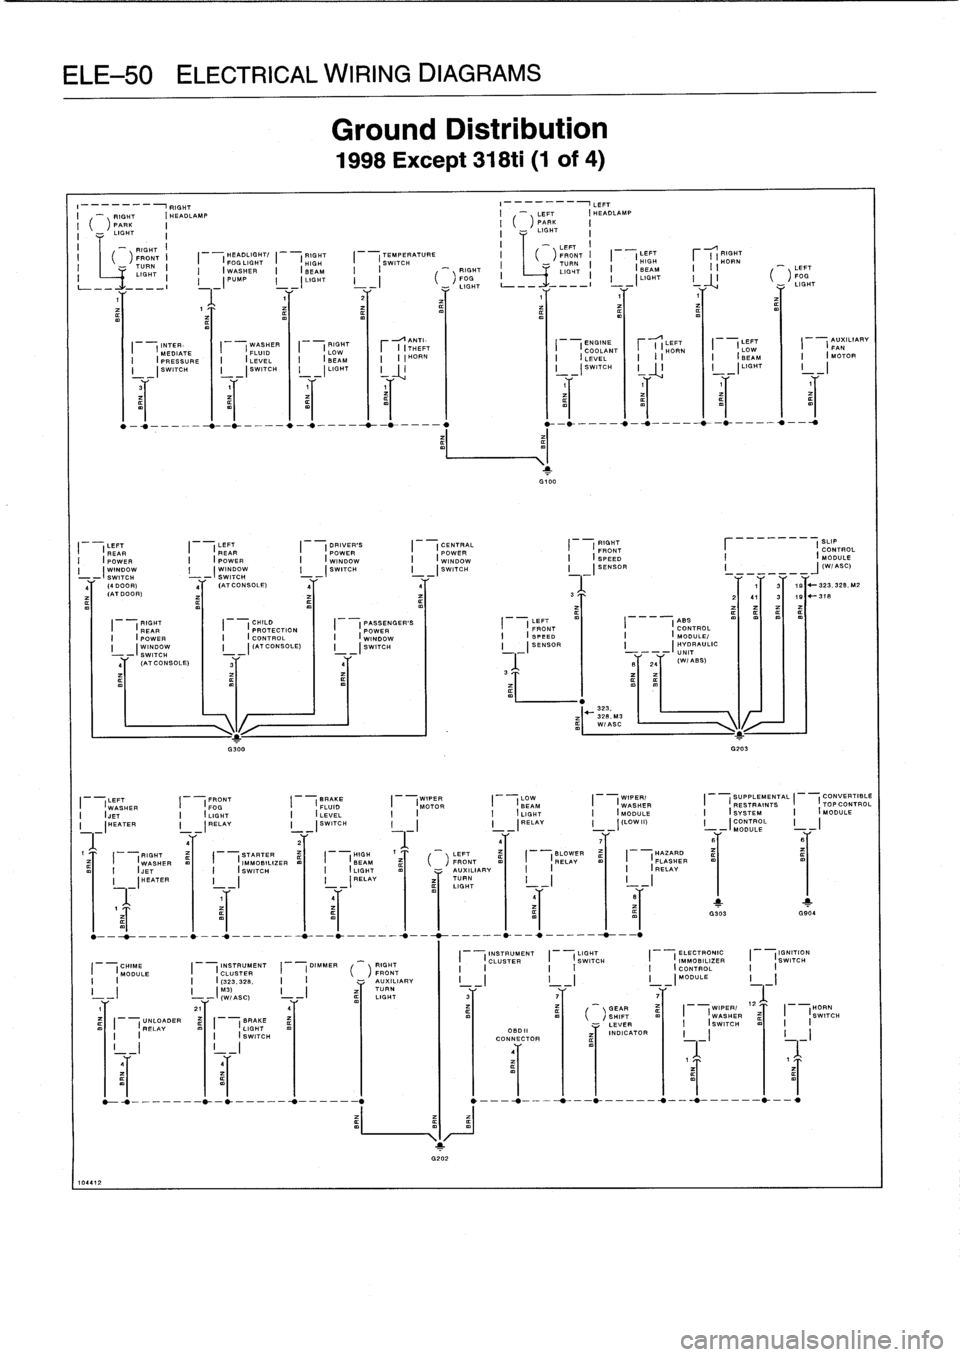 BMW 323i 1993 E36 Workshop Manual, Page 534